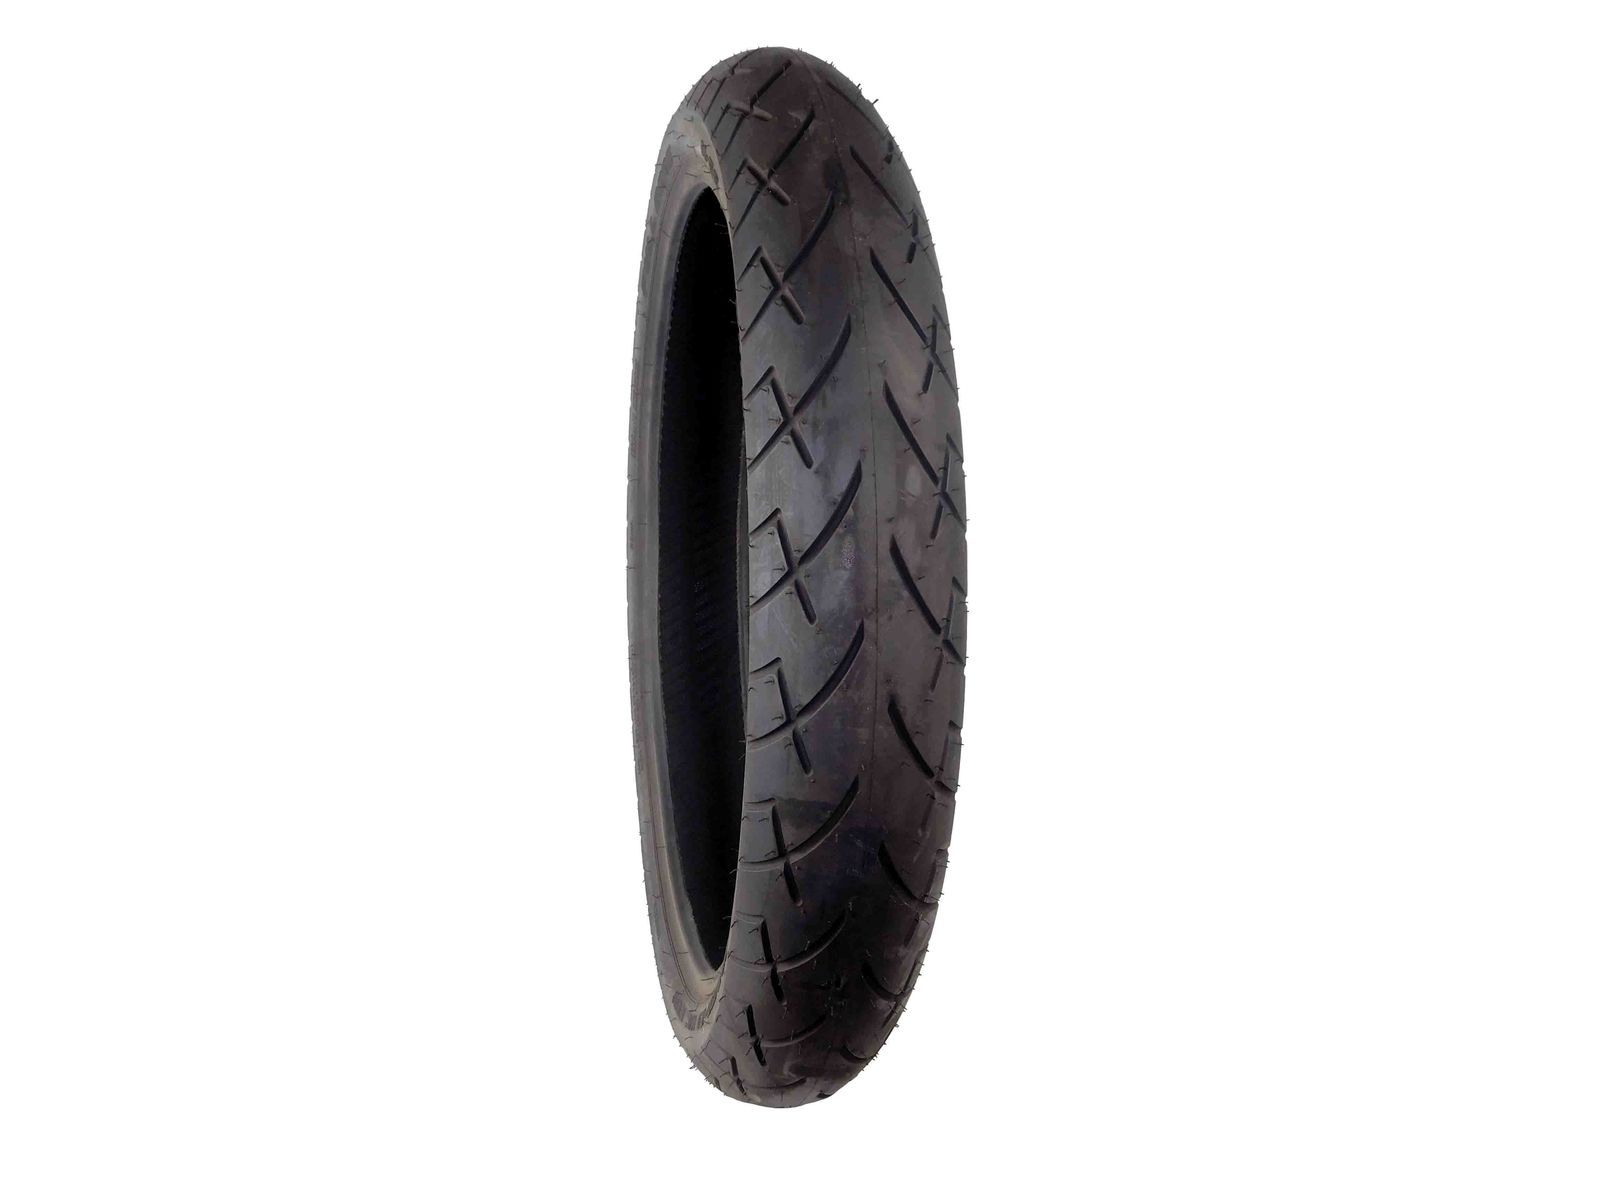 Full-Bore-120-70-21-Front-140-90-16-Tour-King-Cruiser-Motorcycle-Tires-image-2